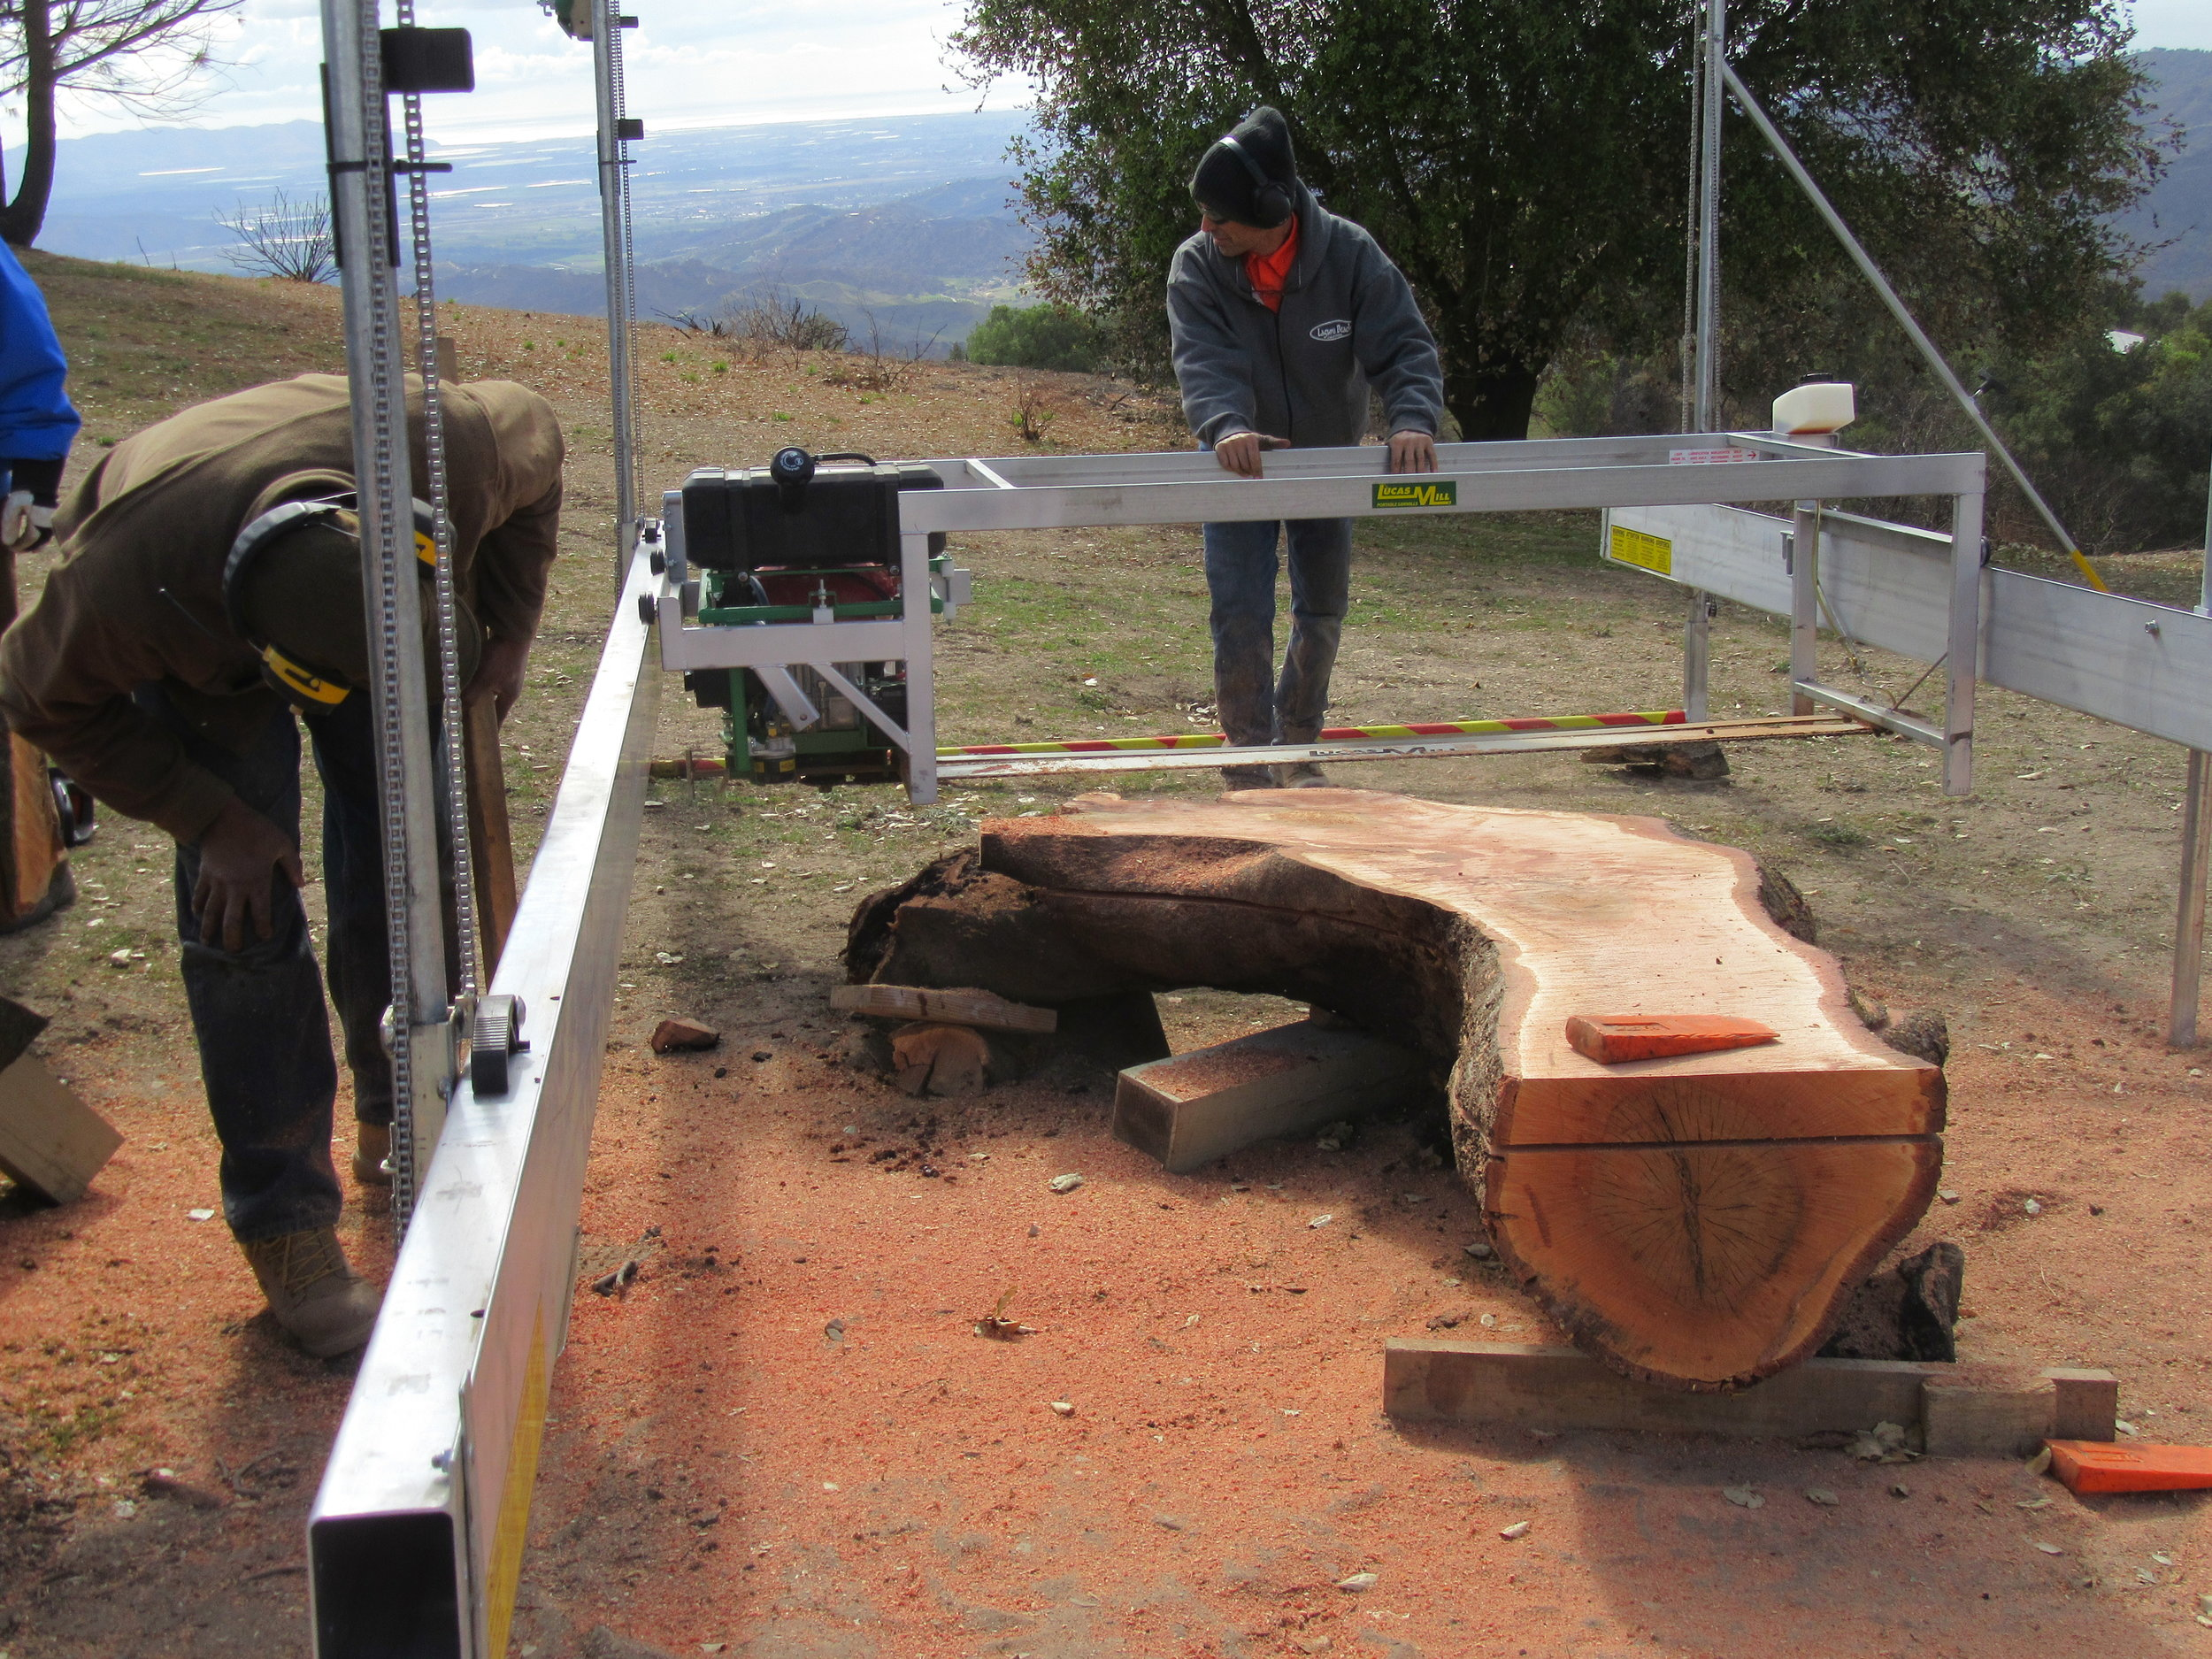 HAROLD GREENE (left) assessing the milling process of one the large limbs that would become an outdoor bench at Meher Mount. The top section was milled into planks, and the bottom section used for a bench. Peter Harnisch (center) is doing the actual milling with his portable saw on site at Meher Mount on February 13, 2018. (Photo: Sam Ervin)